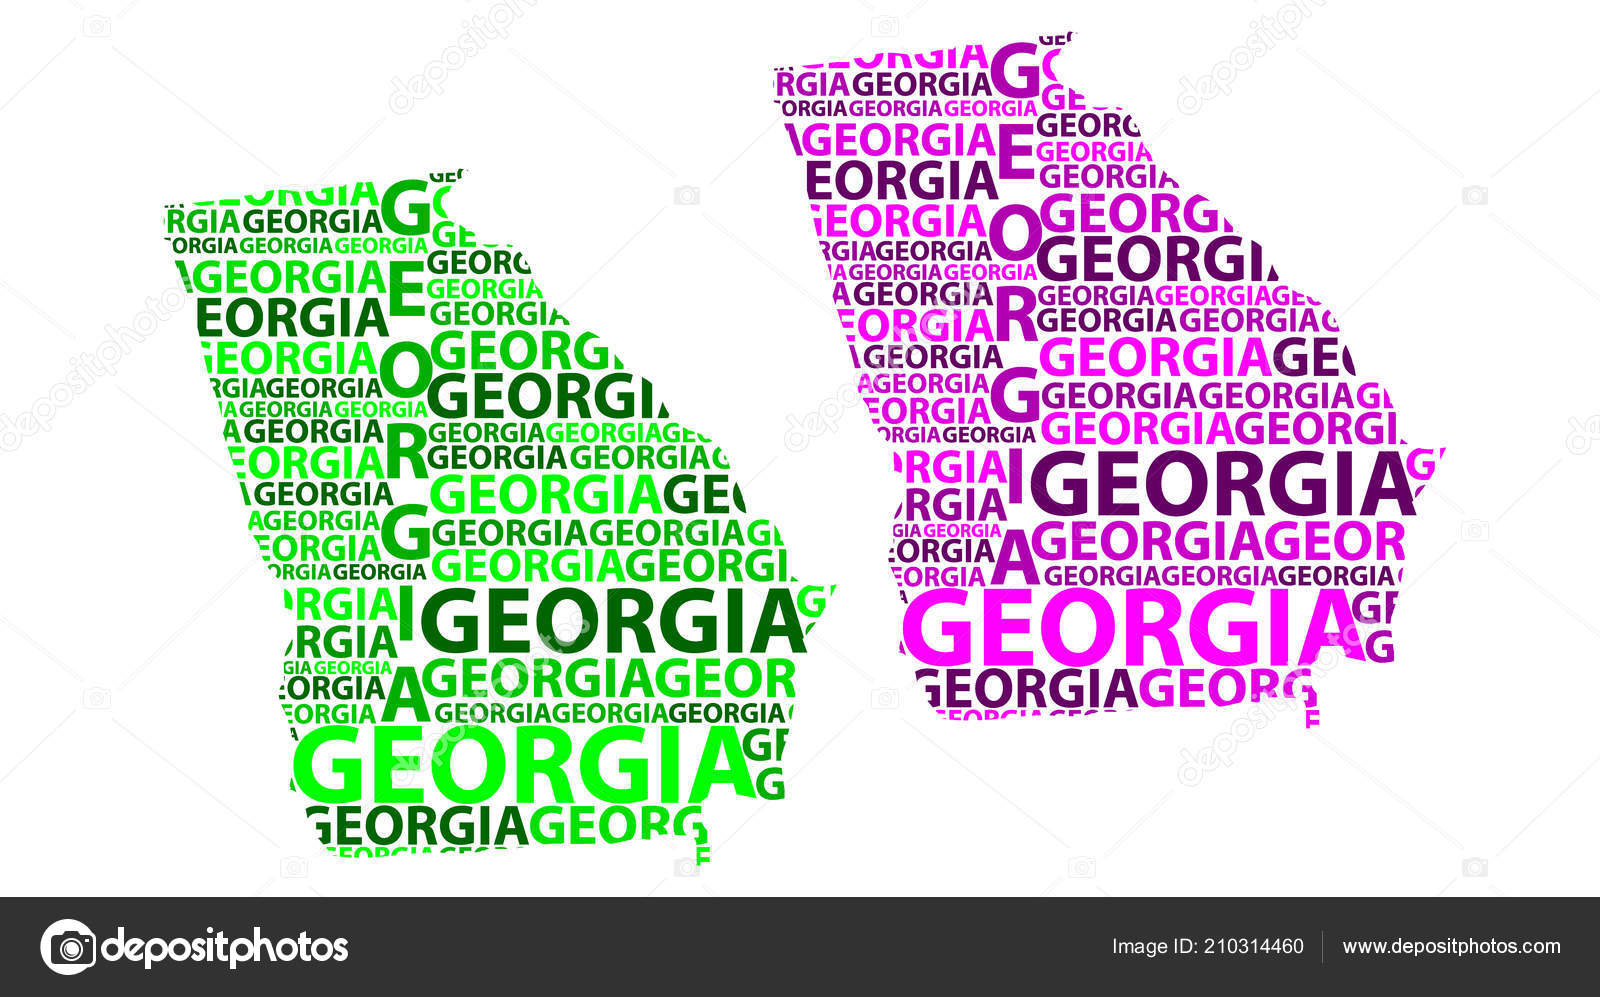 Sketch Georgia United States America Letter Text Map Georgia ... on georgia map of africa, georgia state of america, savannah georgia map, georgia flag, georgia russia map, georgia on map, georgia travel map, georgia capital map, georgia water map, georgia in united states, georgia map with cities, georgia population by county, georgia road map detailed, atlanta georgia state map, georgia world map, baxley georgia map, georgia country, macon georgia map, georgia map atlanta ga, georgia time,